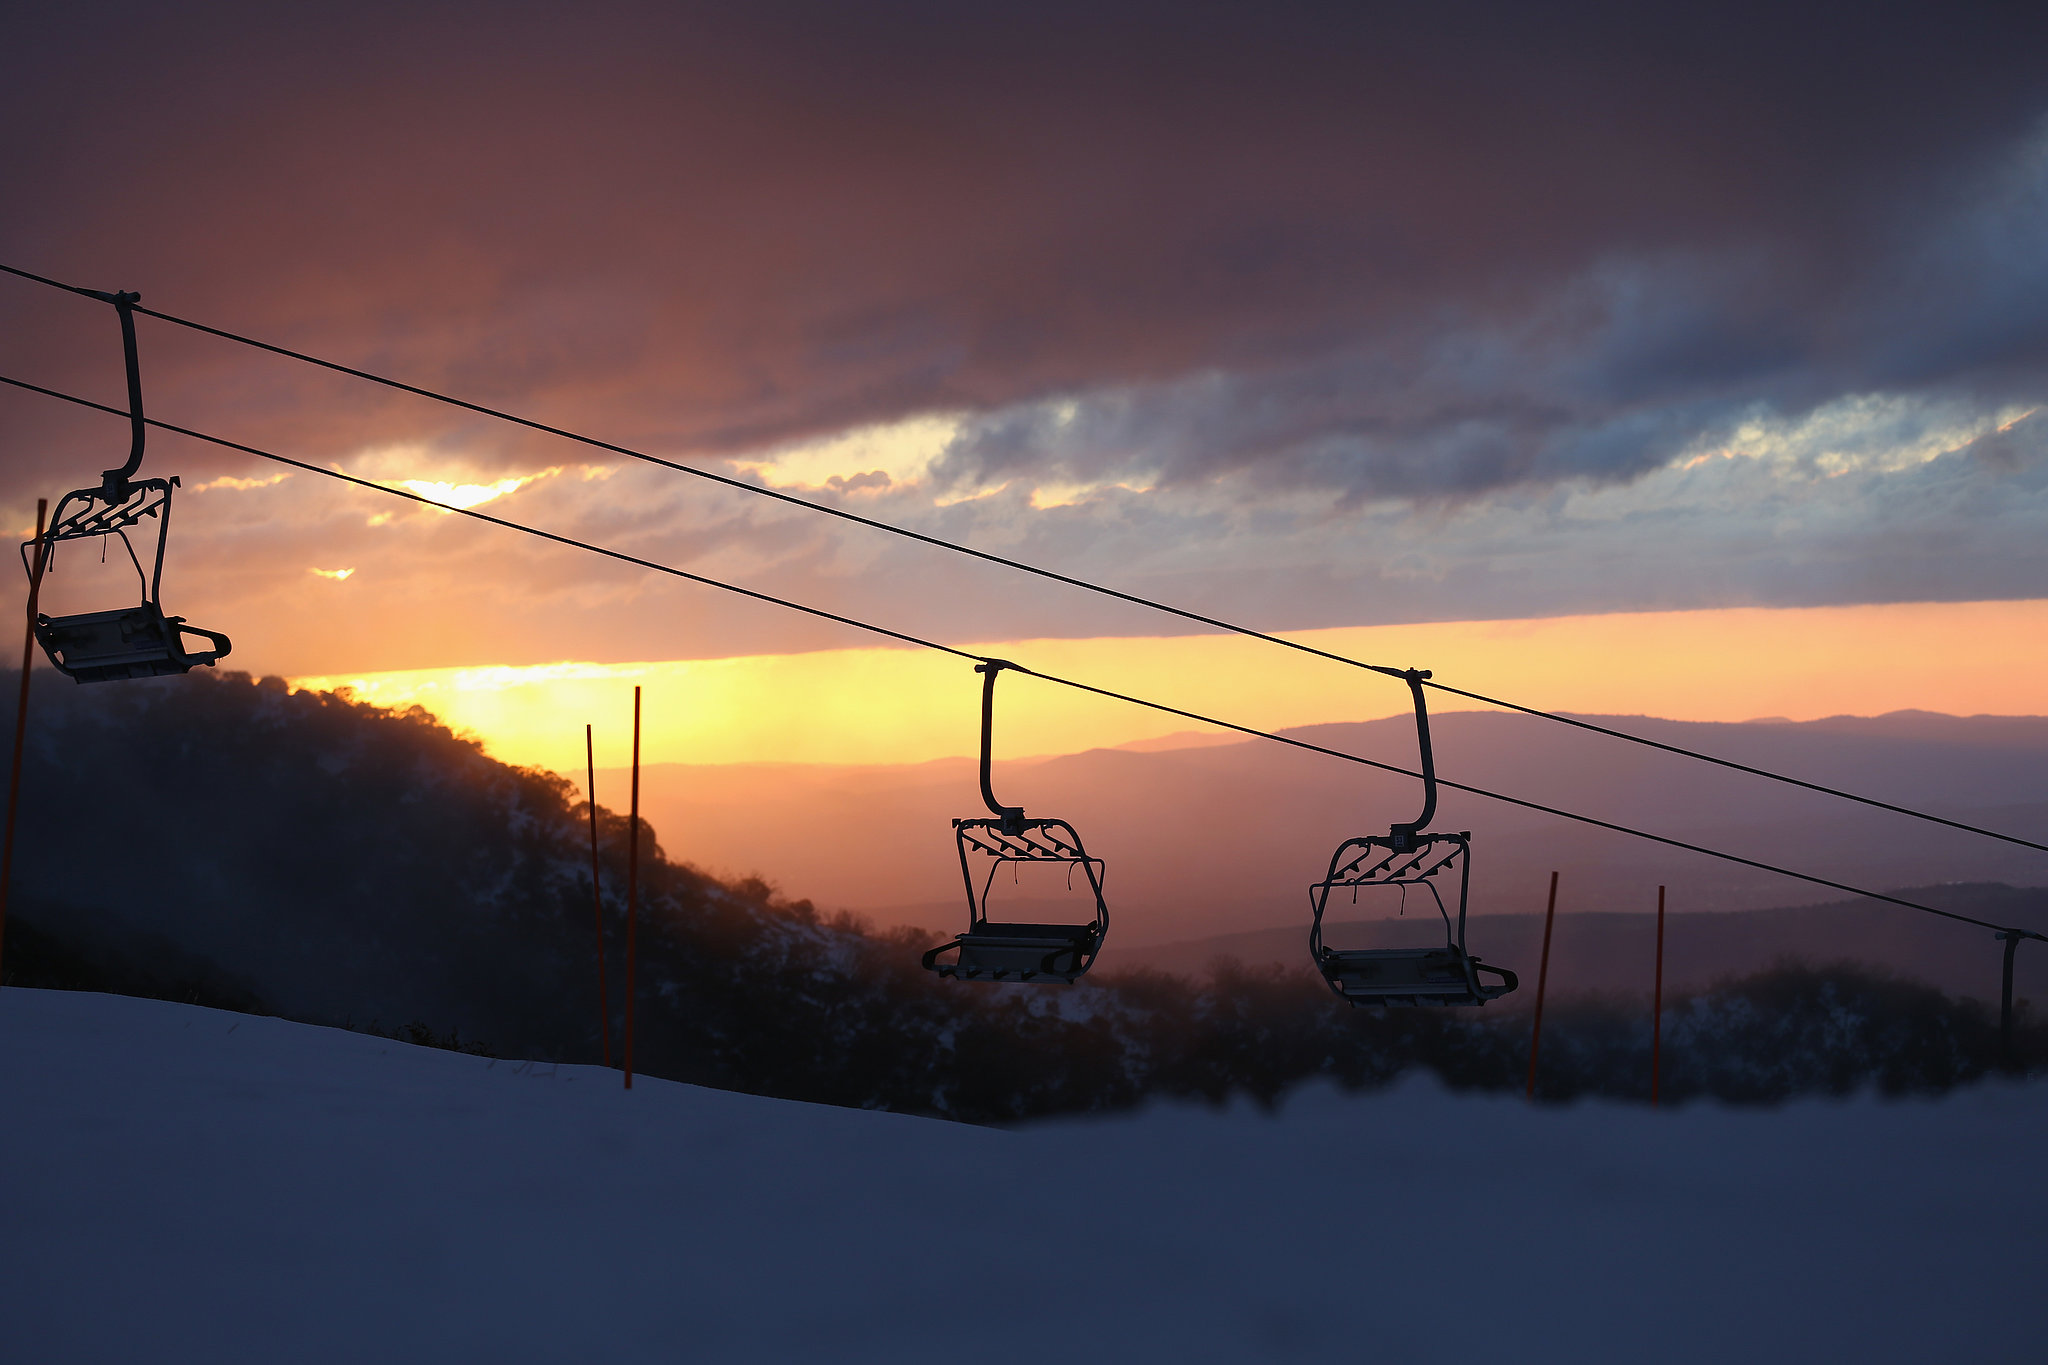 Sunset on the Slopes